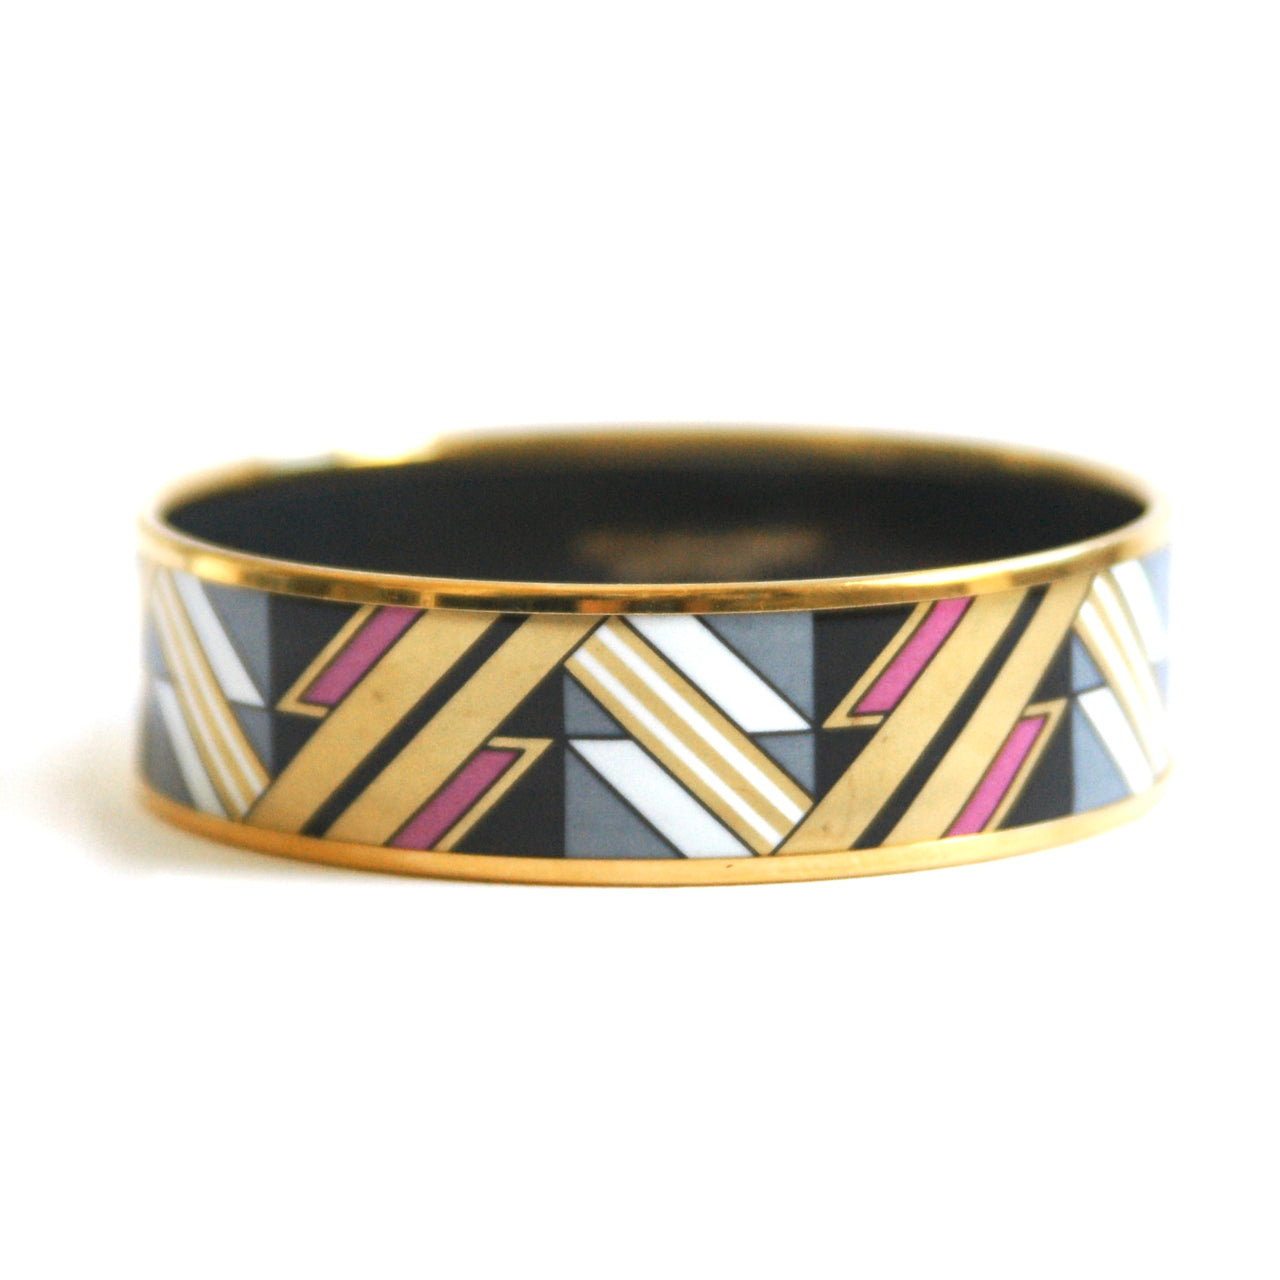 Eclectica Vintage Jewellery | UK | 1970s Vintage Michael Frey Geometric Bangle